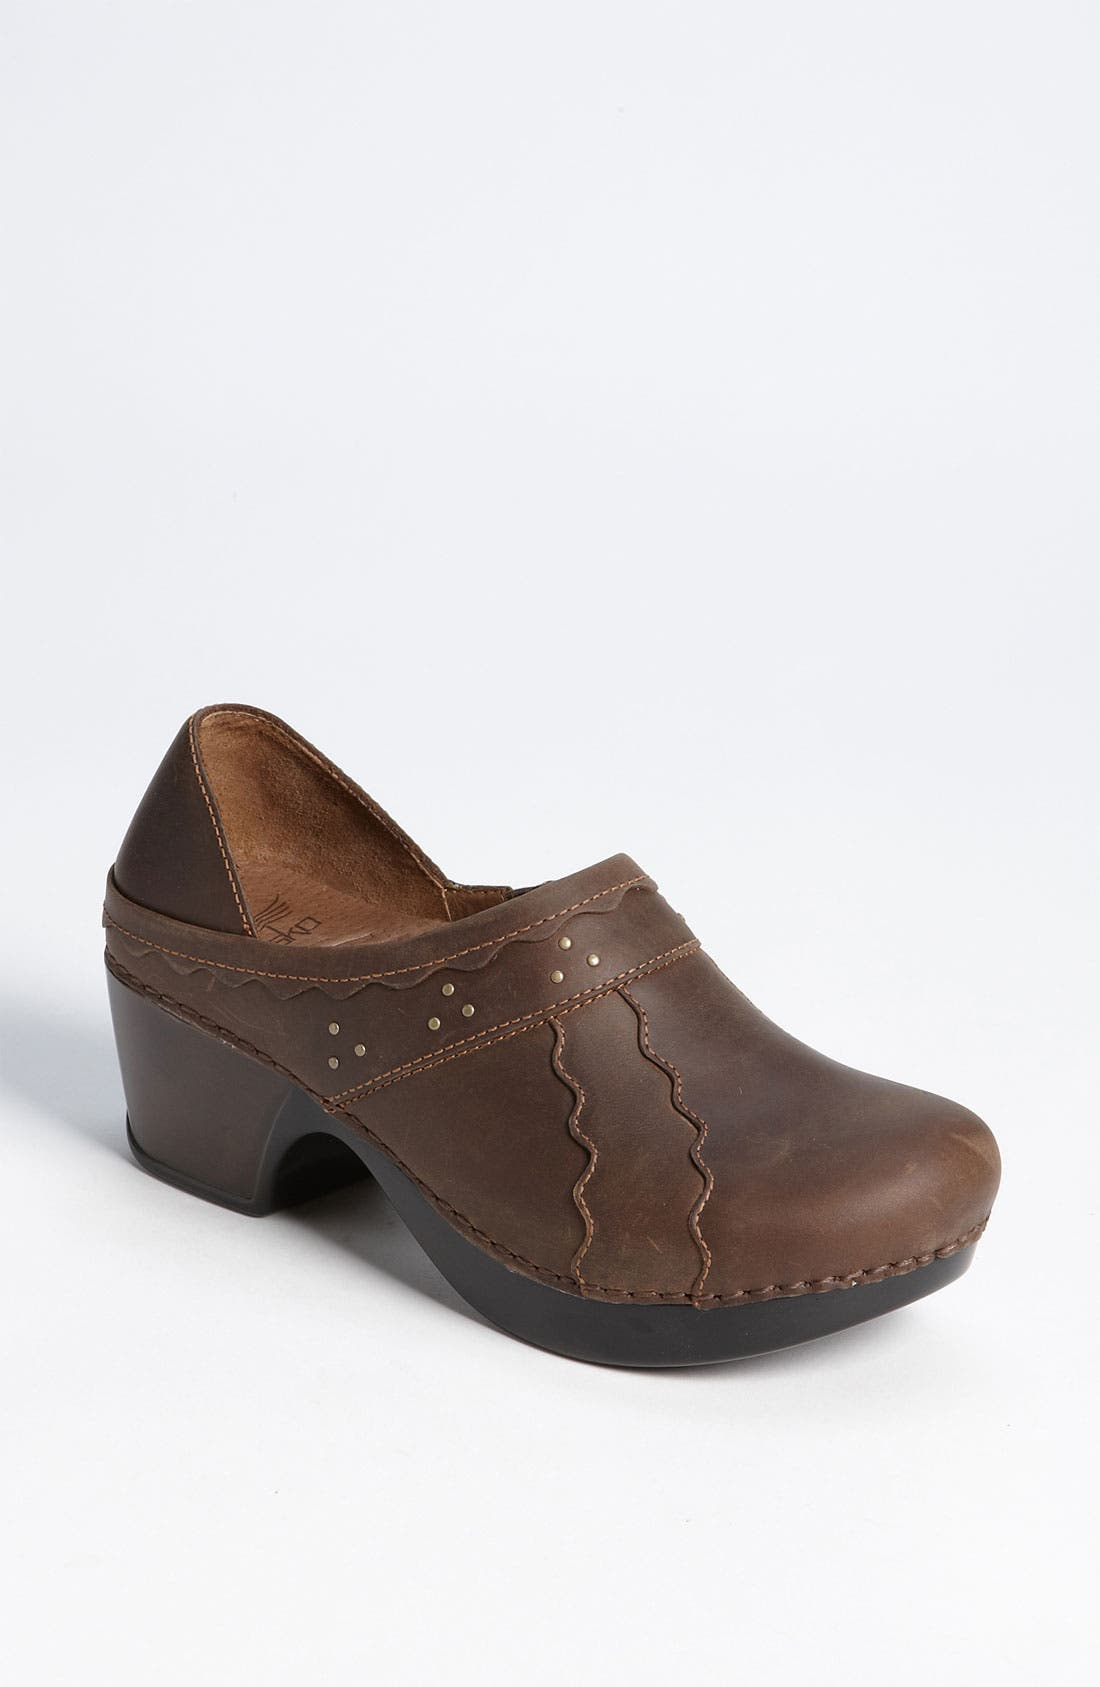 Alternate Image 1 Selected - Dansko 'Hailey' Clog